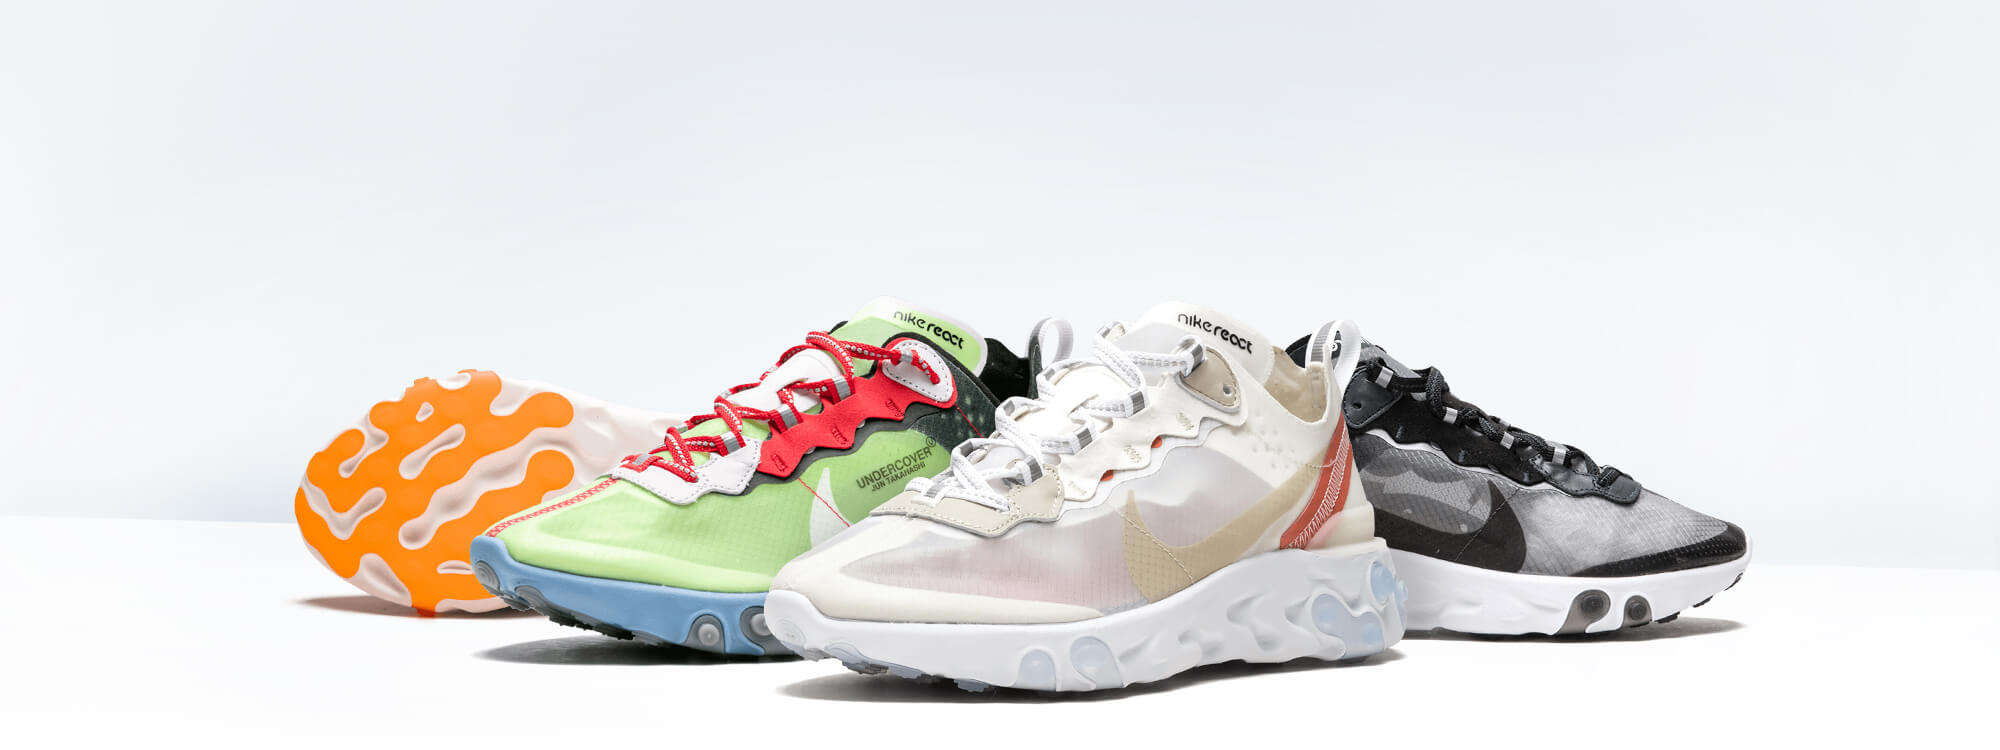 Nike REACT ELEMENT 87  store